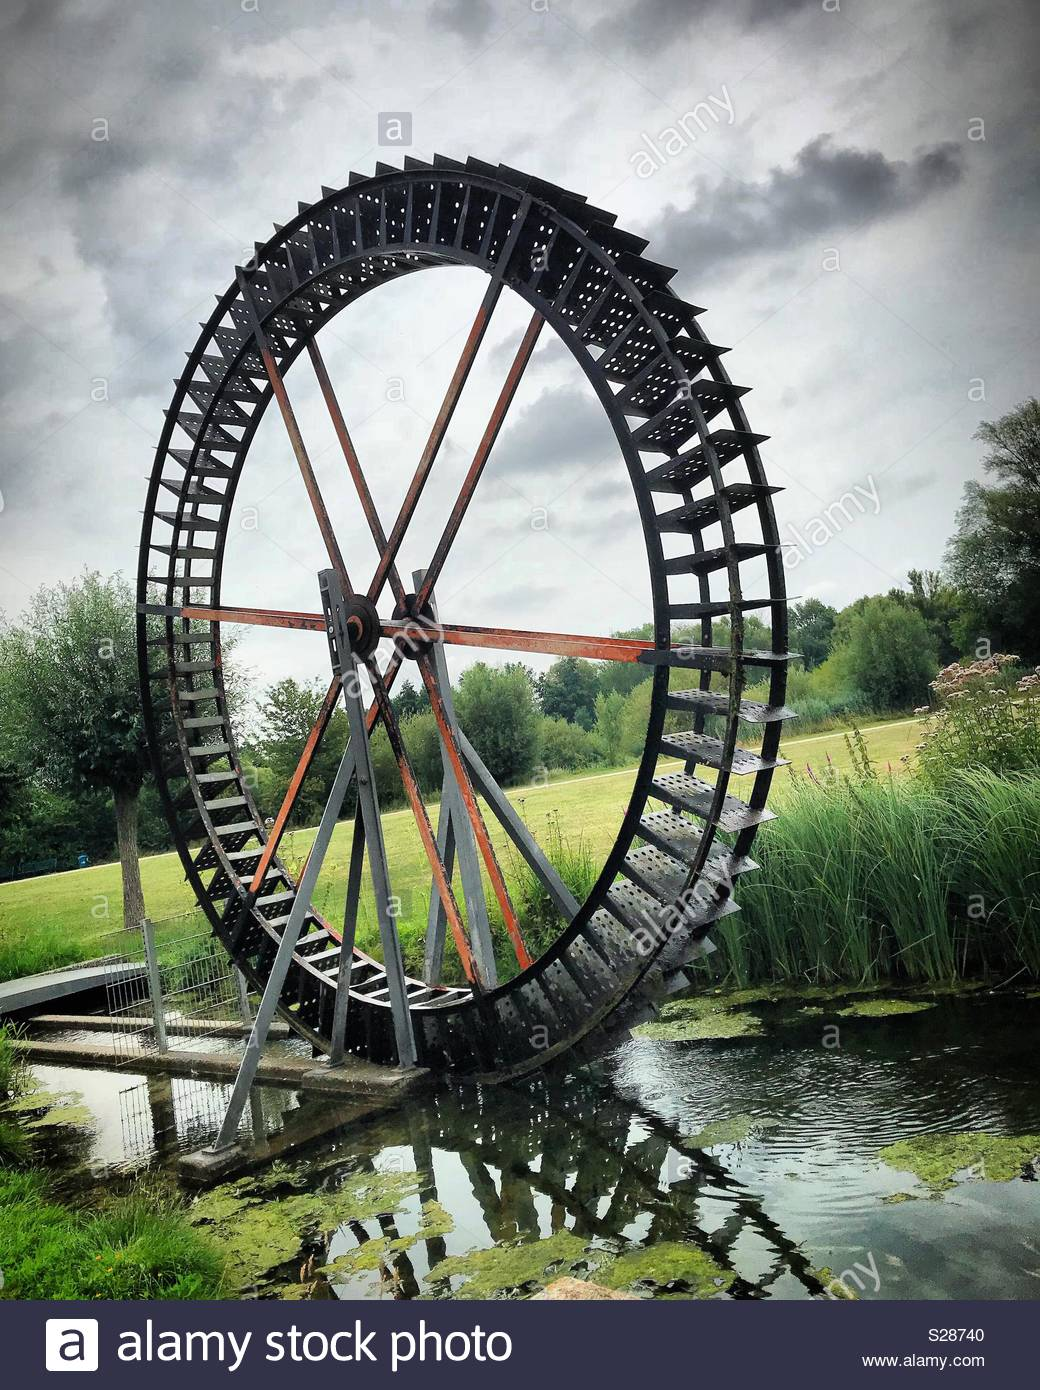 Water wheel spinning water bathed in green summertime colors. - Stock Image